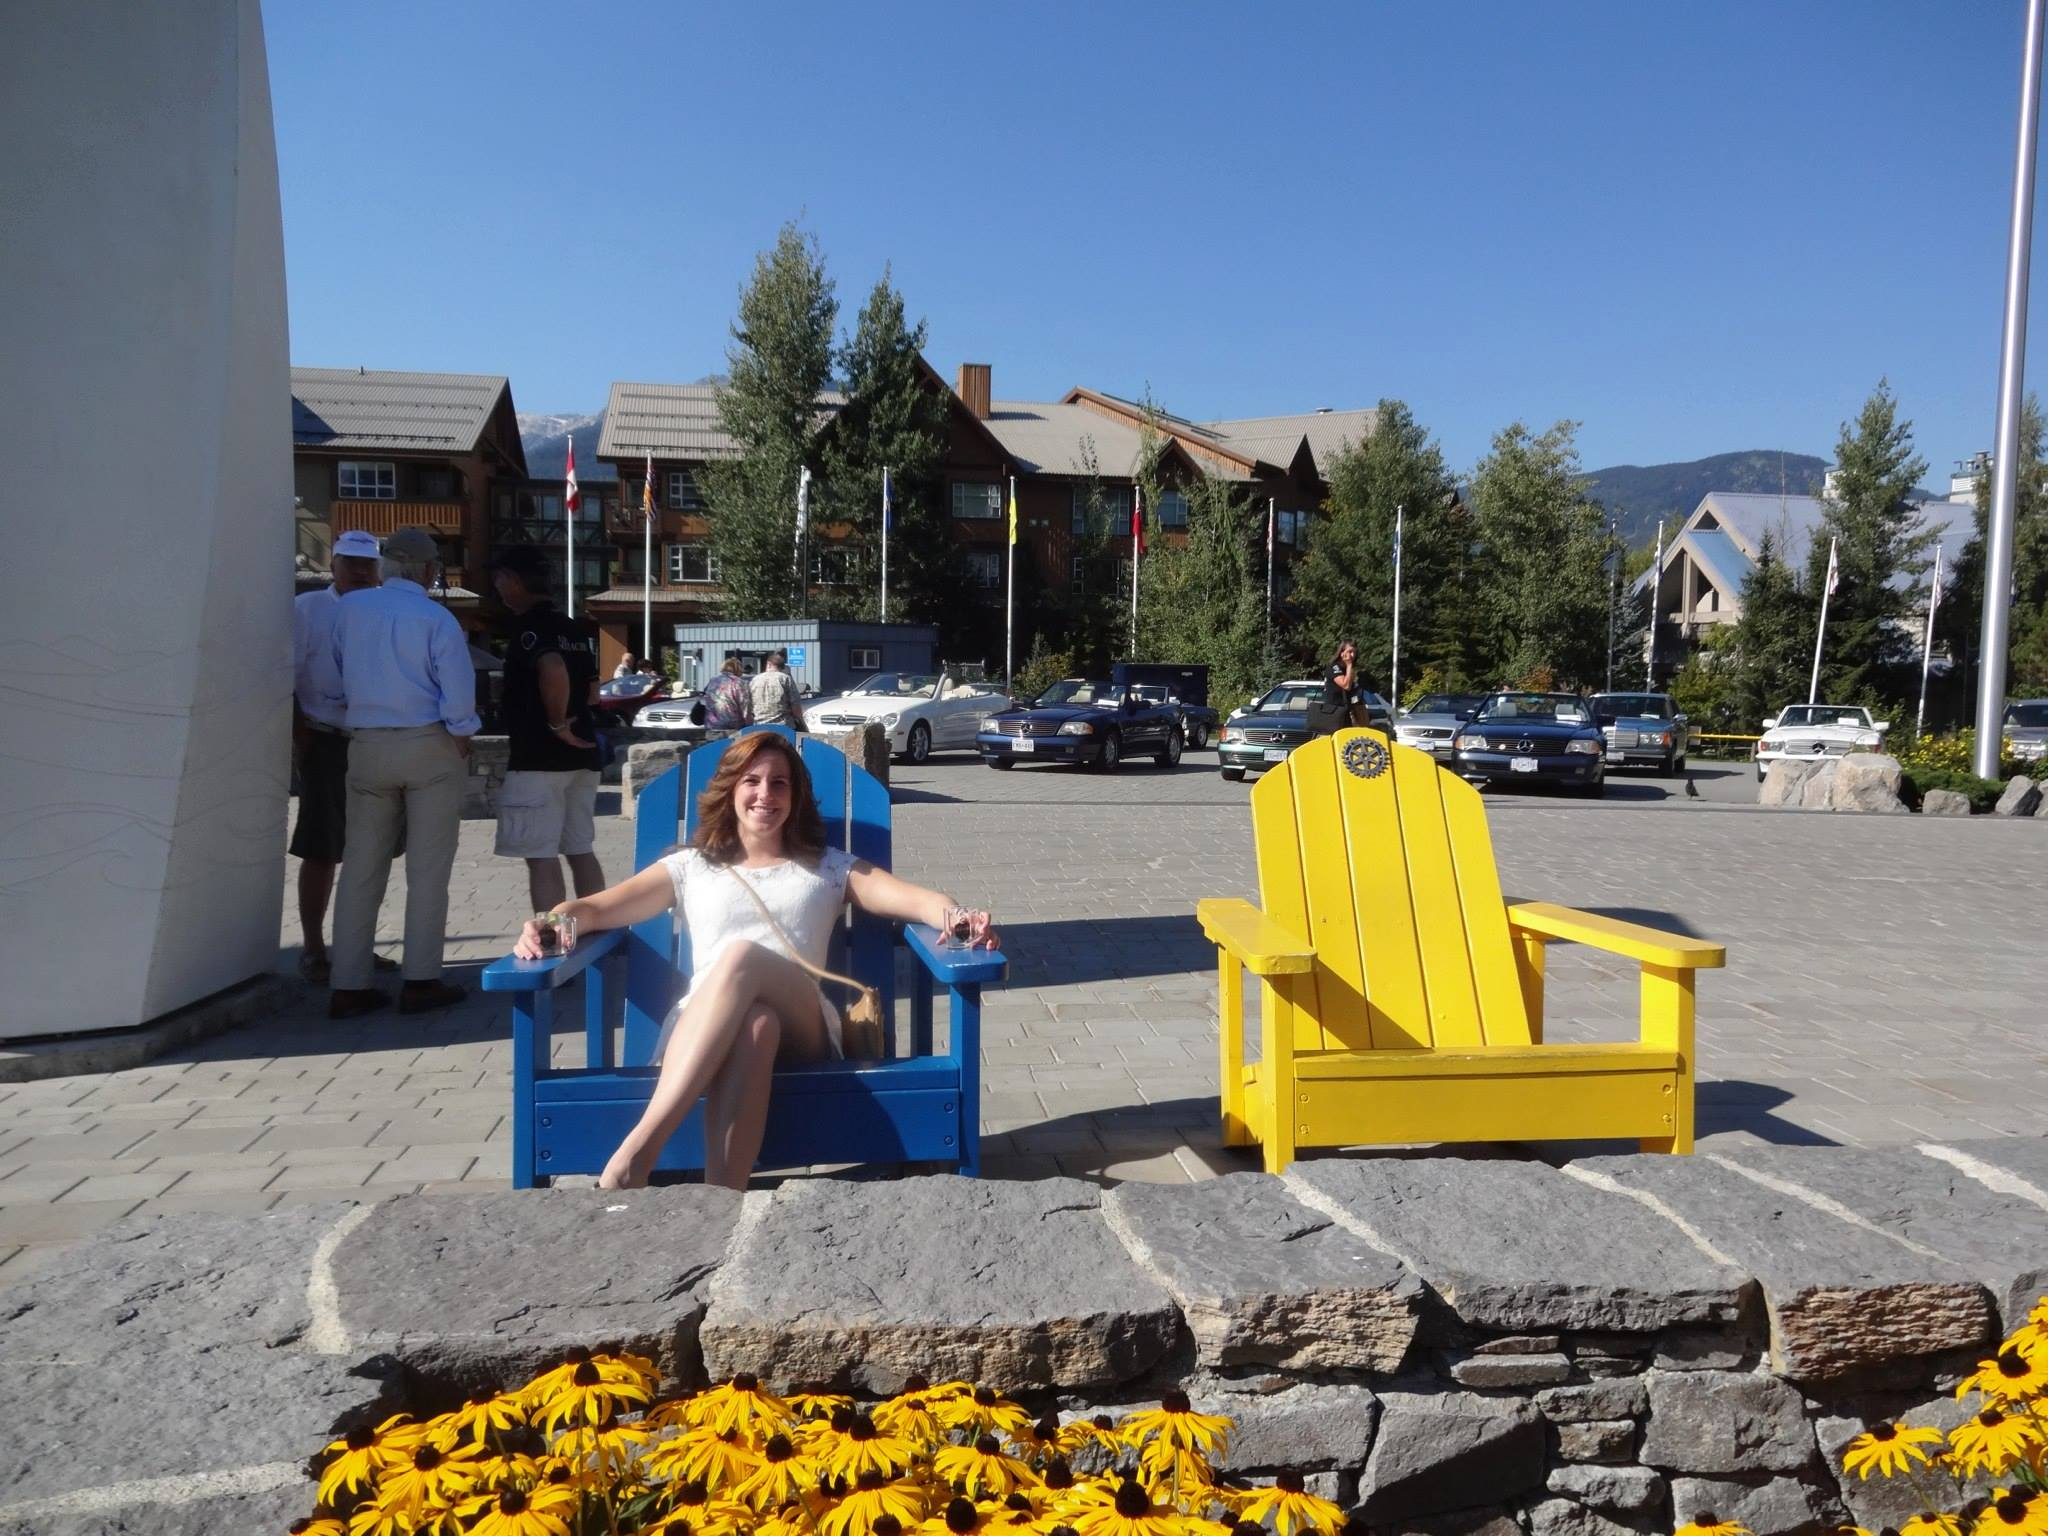 Woman in blue chair at Whistler village